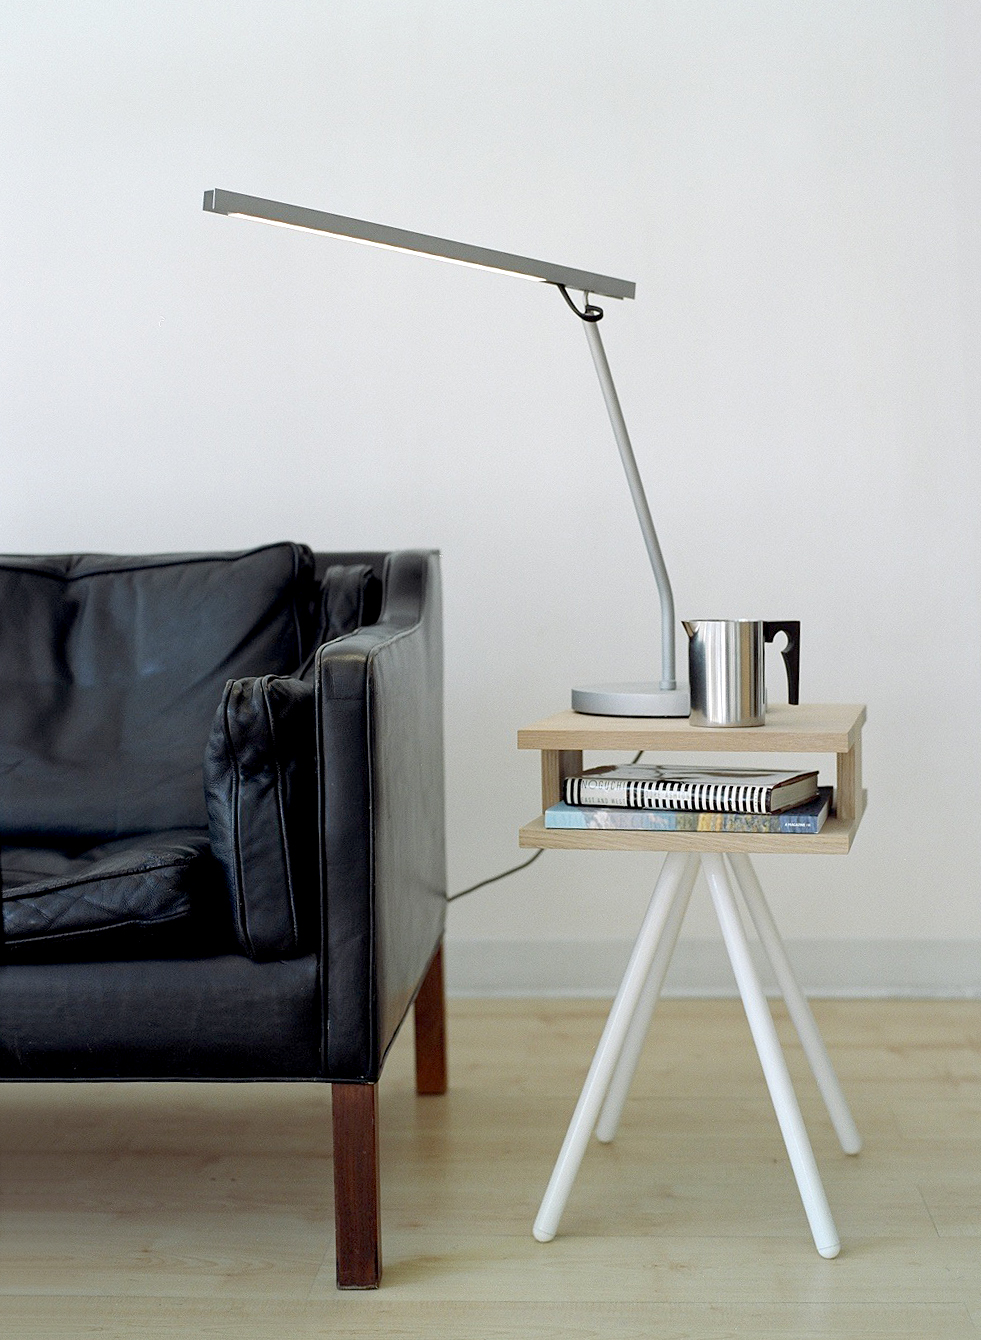 Steel Wood Table with a Maarten Van Severen w111t table lamp, beside a Børge Mogensen 2213 sofa.